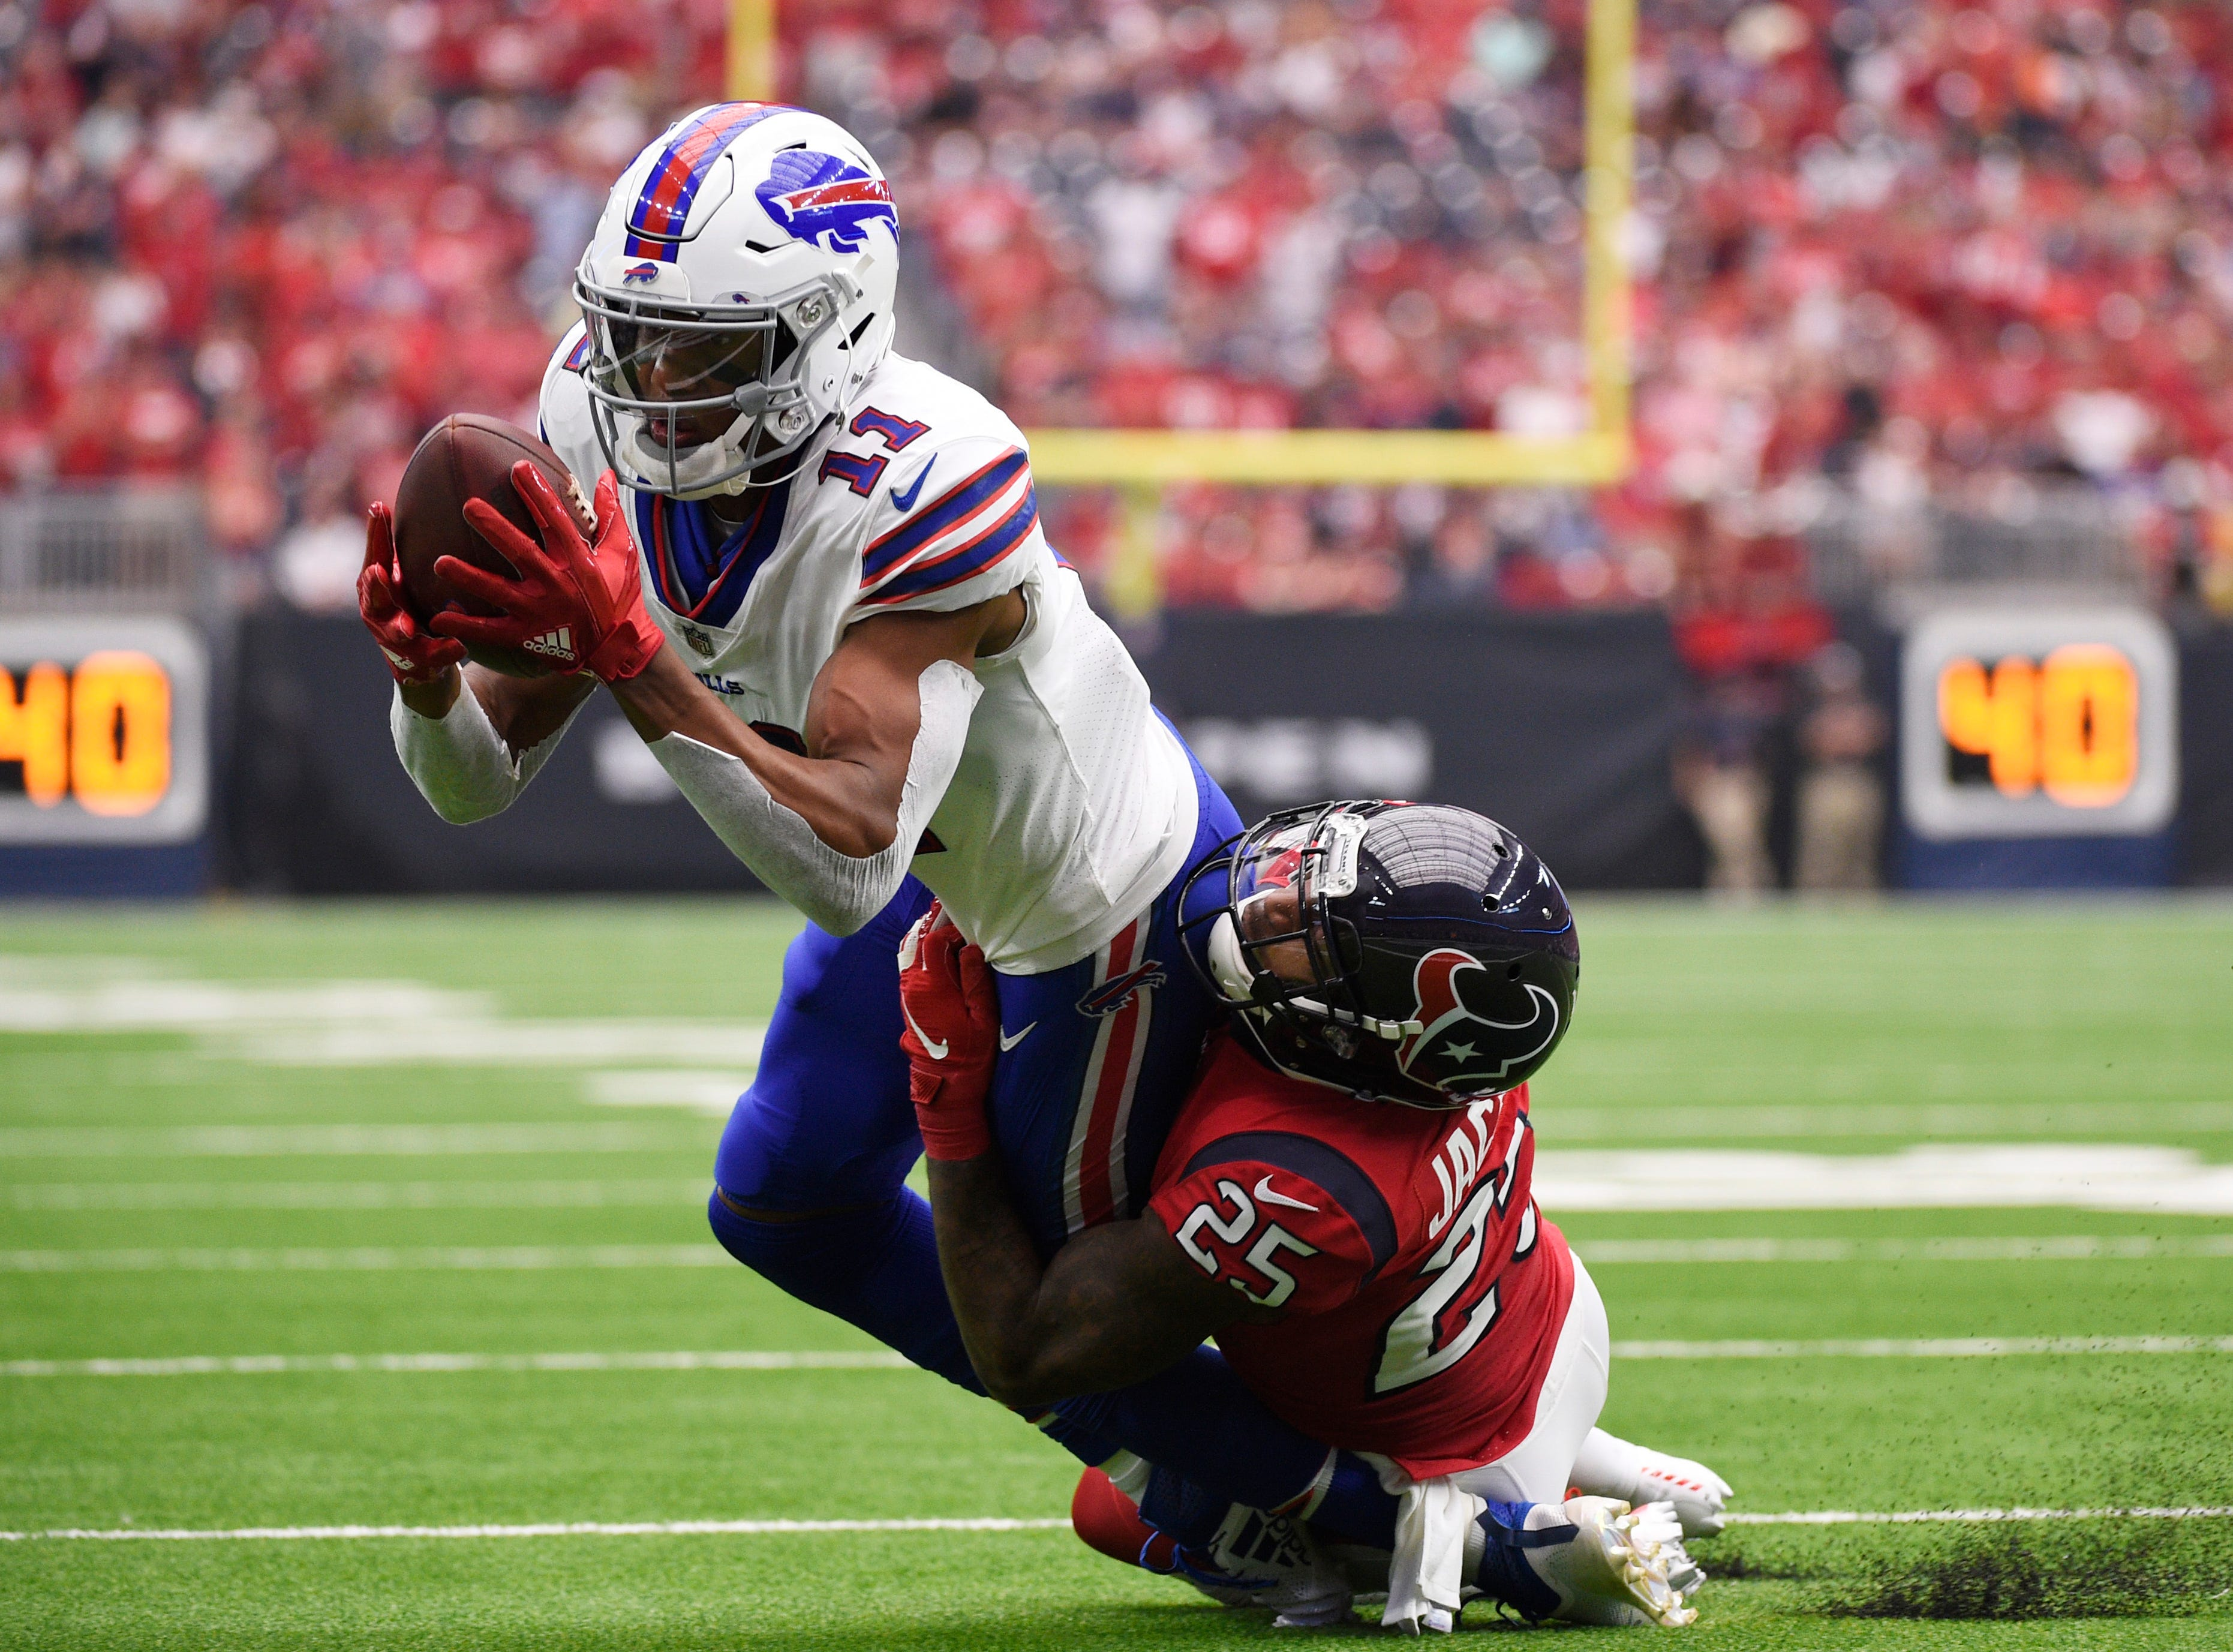 Buffalo Bills wide receiver Zay Jones (11) is hit by Houston Texans strong safety Kareem Jackson (25) after making a catch during the second half of an NFL football game, Sunday, Oct. 14, 2018, in Houston. (AP Photo/Eric Christian Smith)